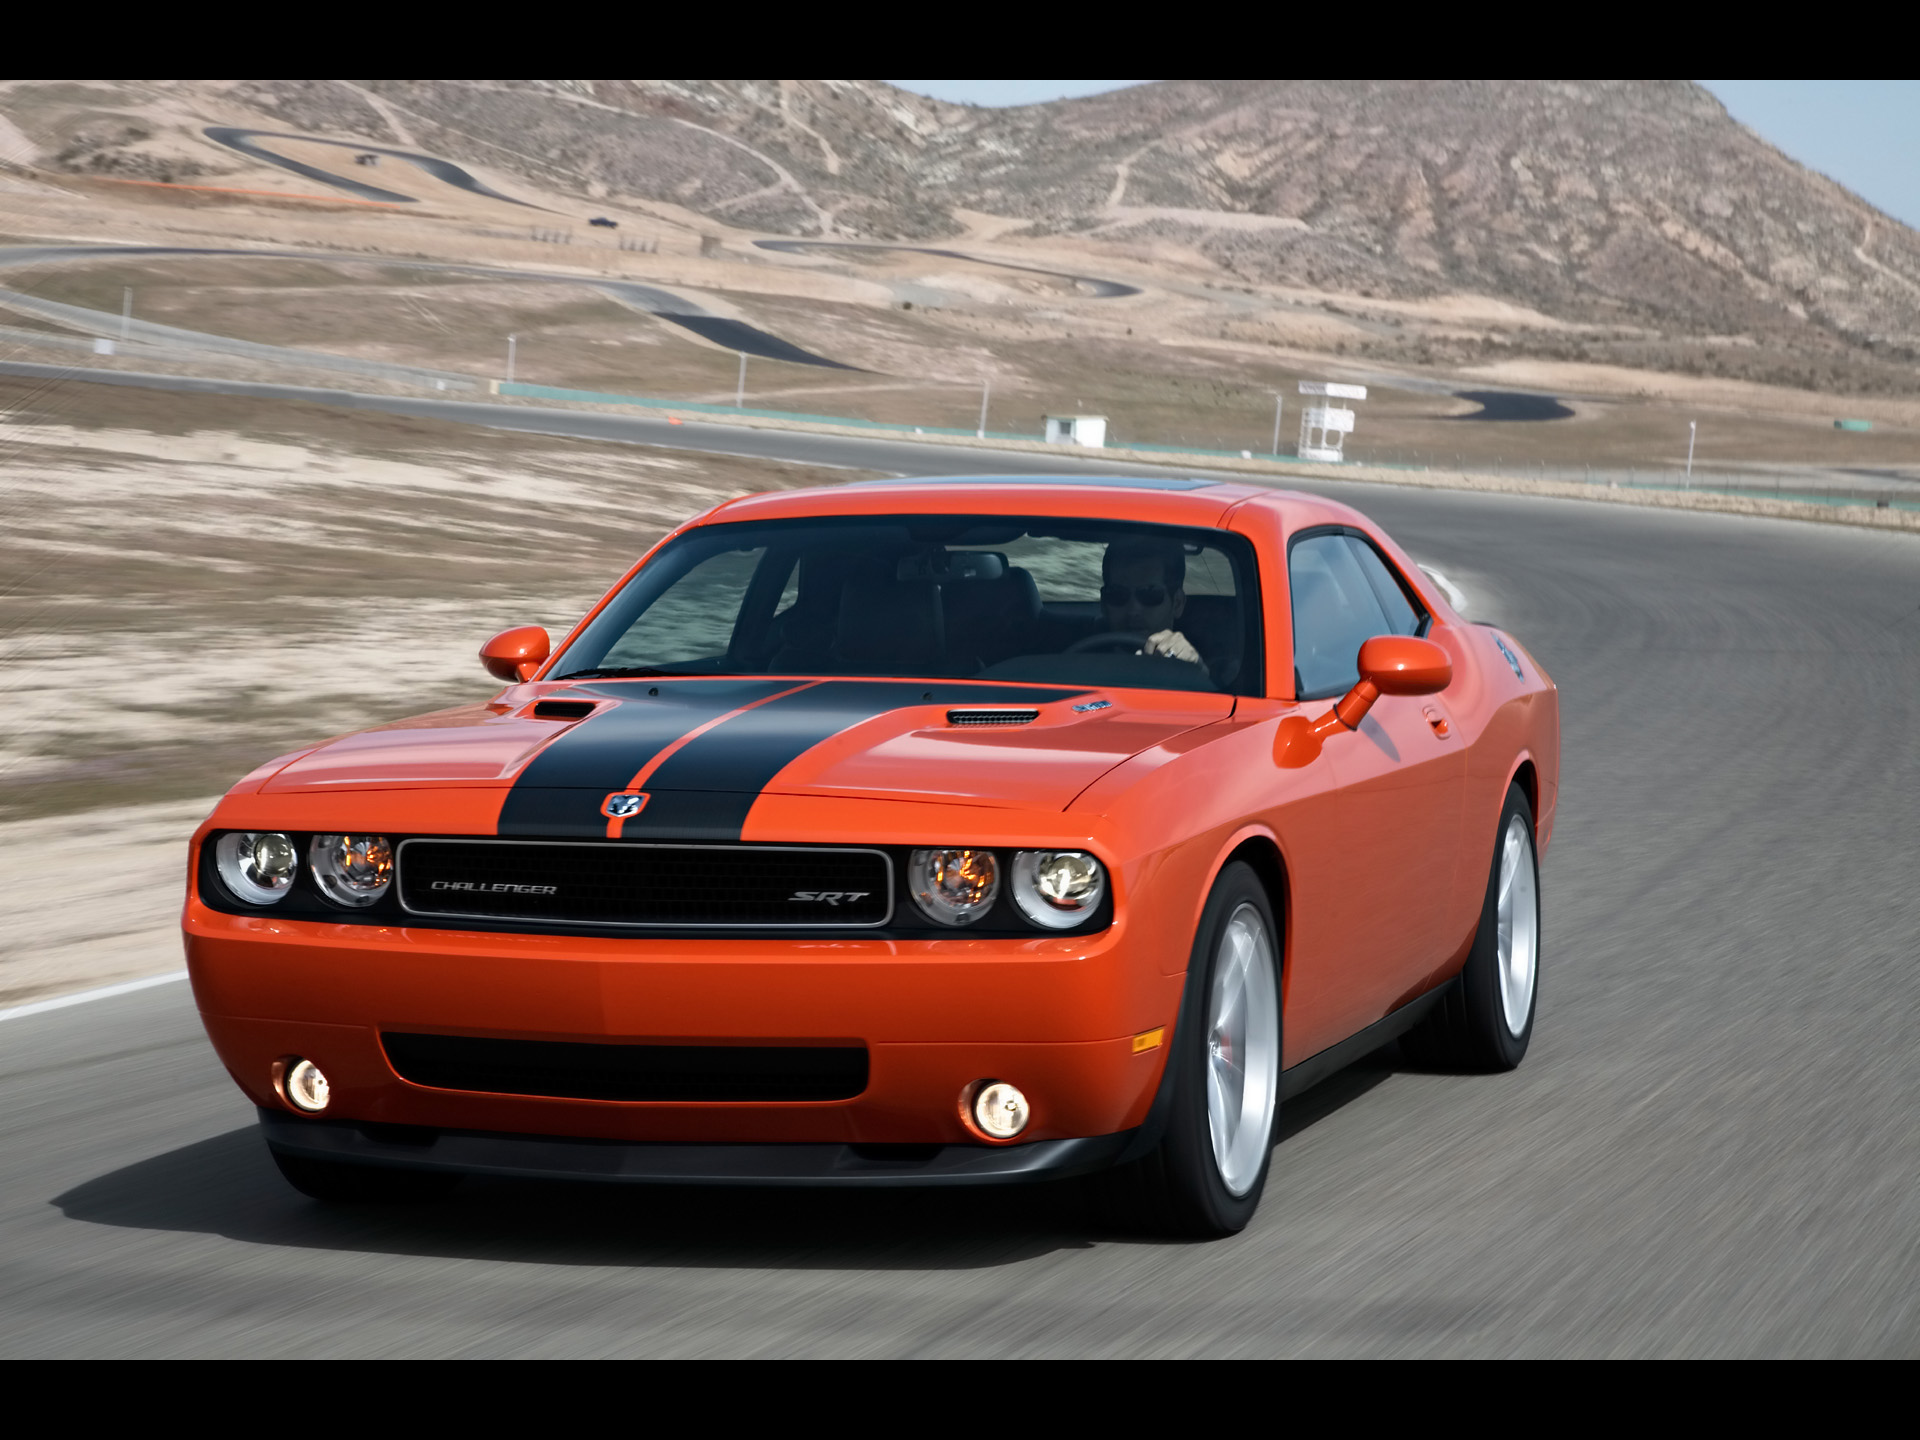 Dodge Challenger SRT8 wallpapers Dodge Challenger SRT8 stock photos 1920x1440